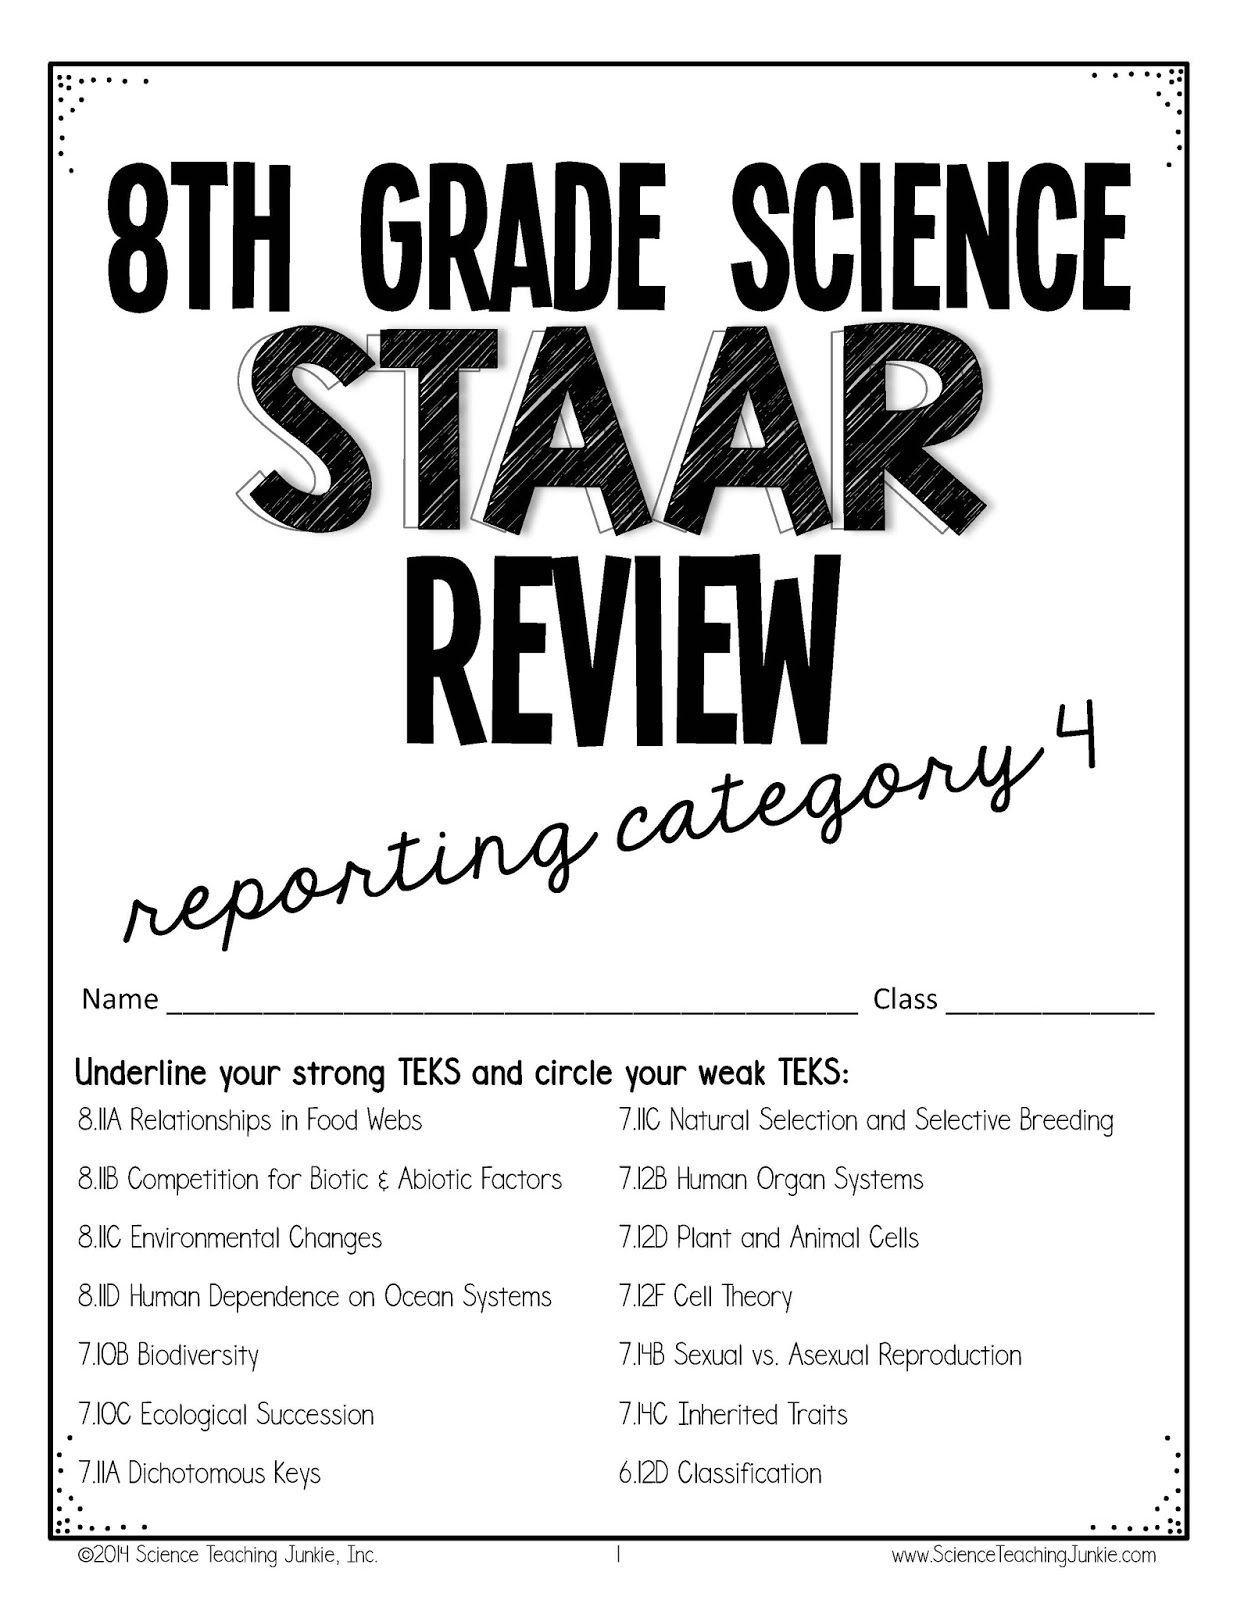 Science Teaching Junkie Inc 8th Grade Science Staar Review